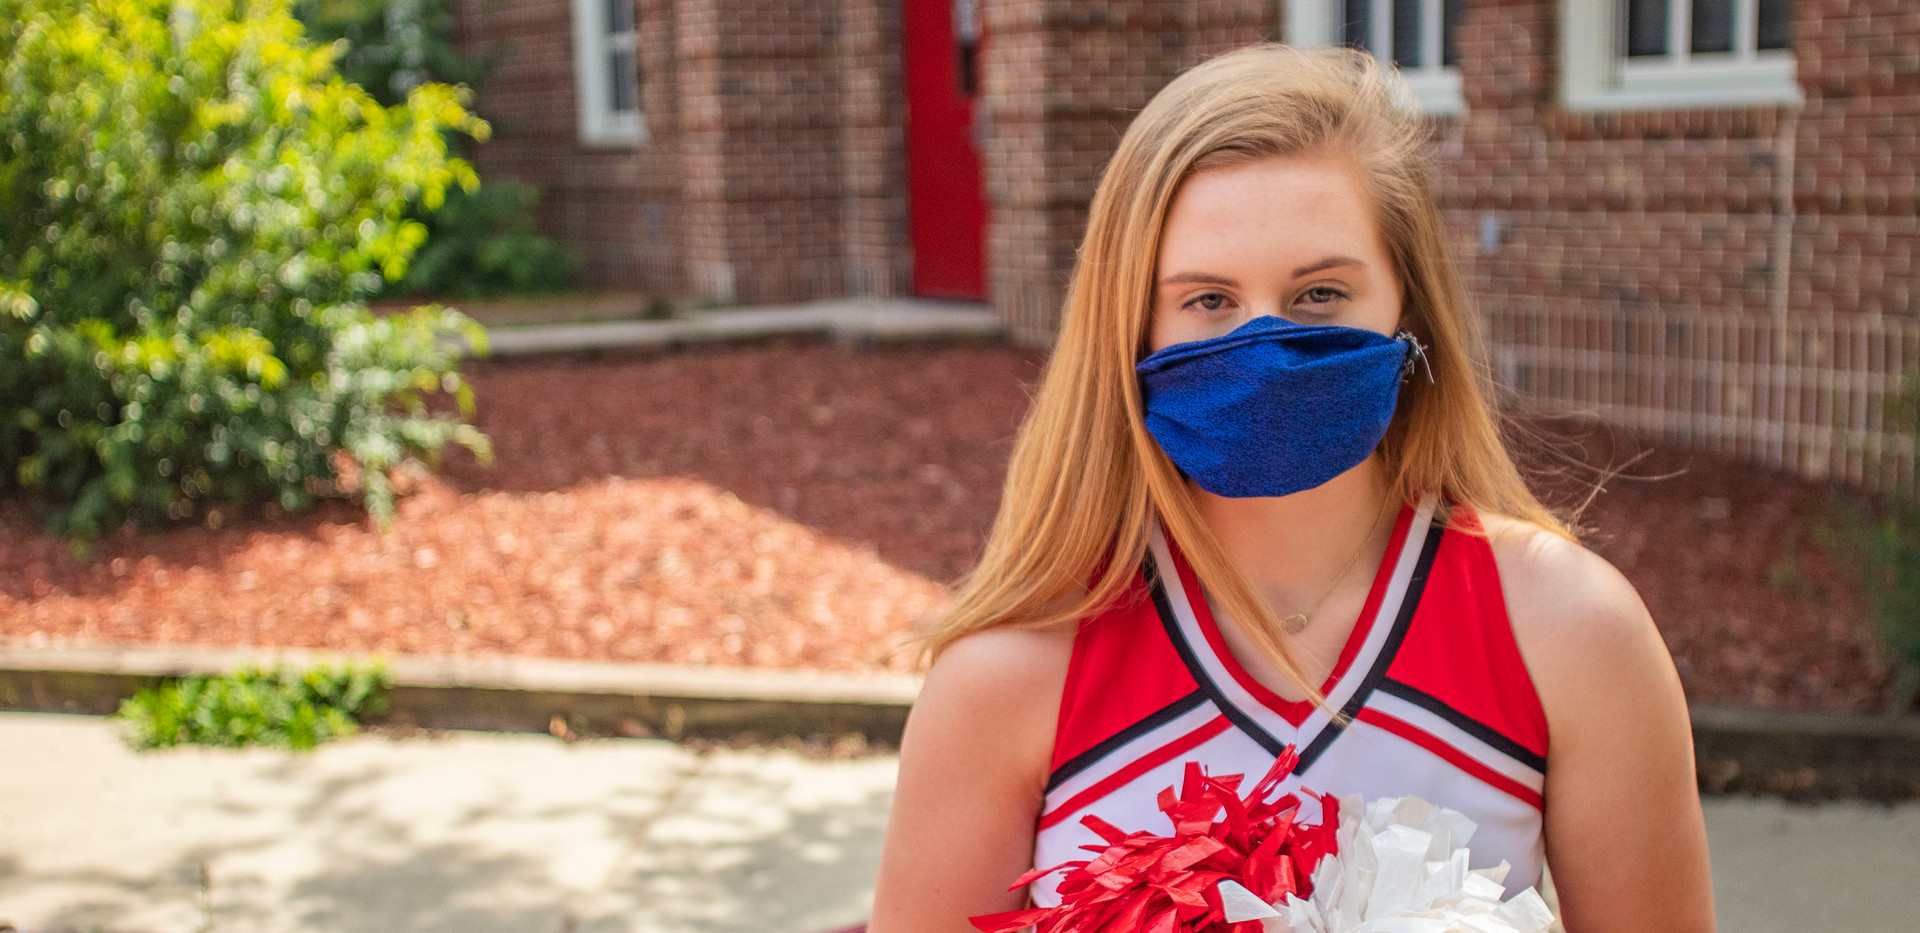 McKenna Laughlin, 18, misses seeing some of her teachers who she formed close bonds with this school year. McKenna is a senior and cheer captain at Leon High School, who will be graduating and attending Florida State University in the fall.